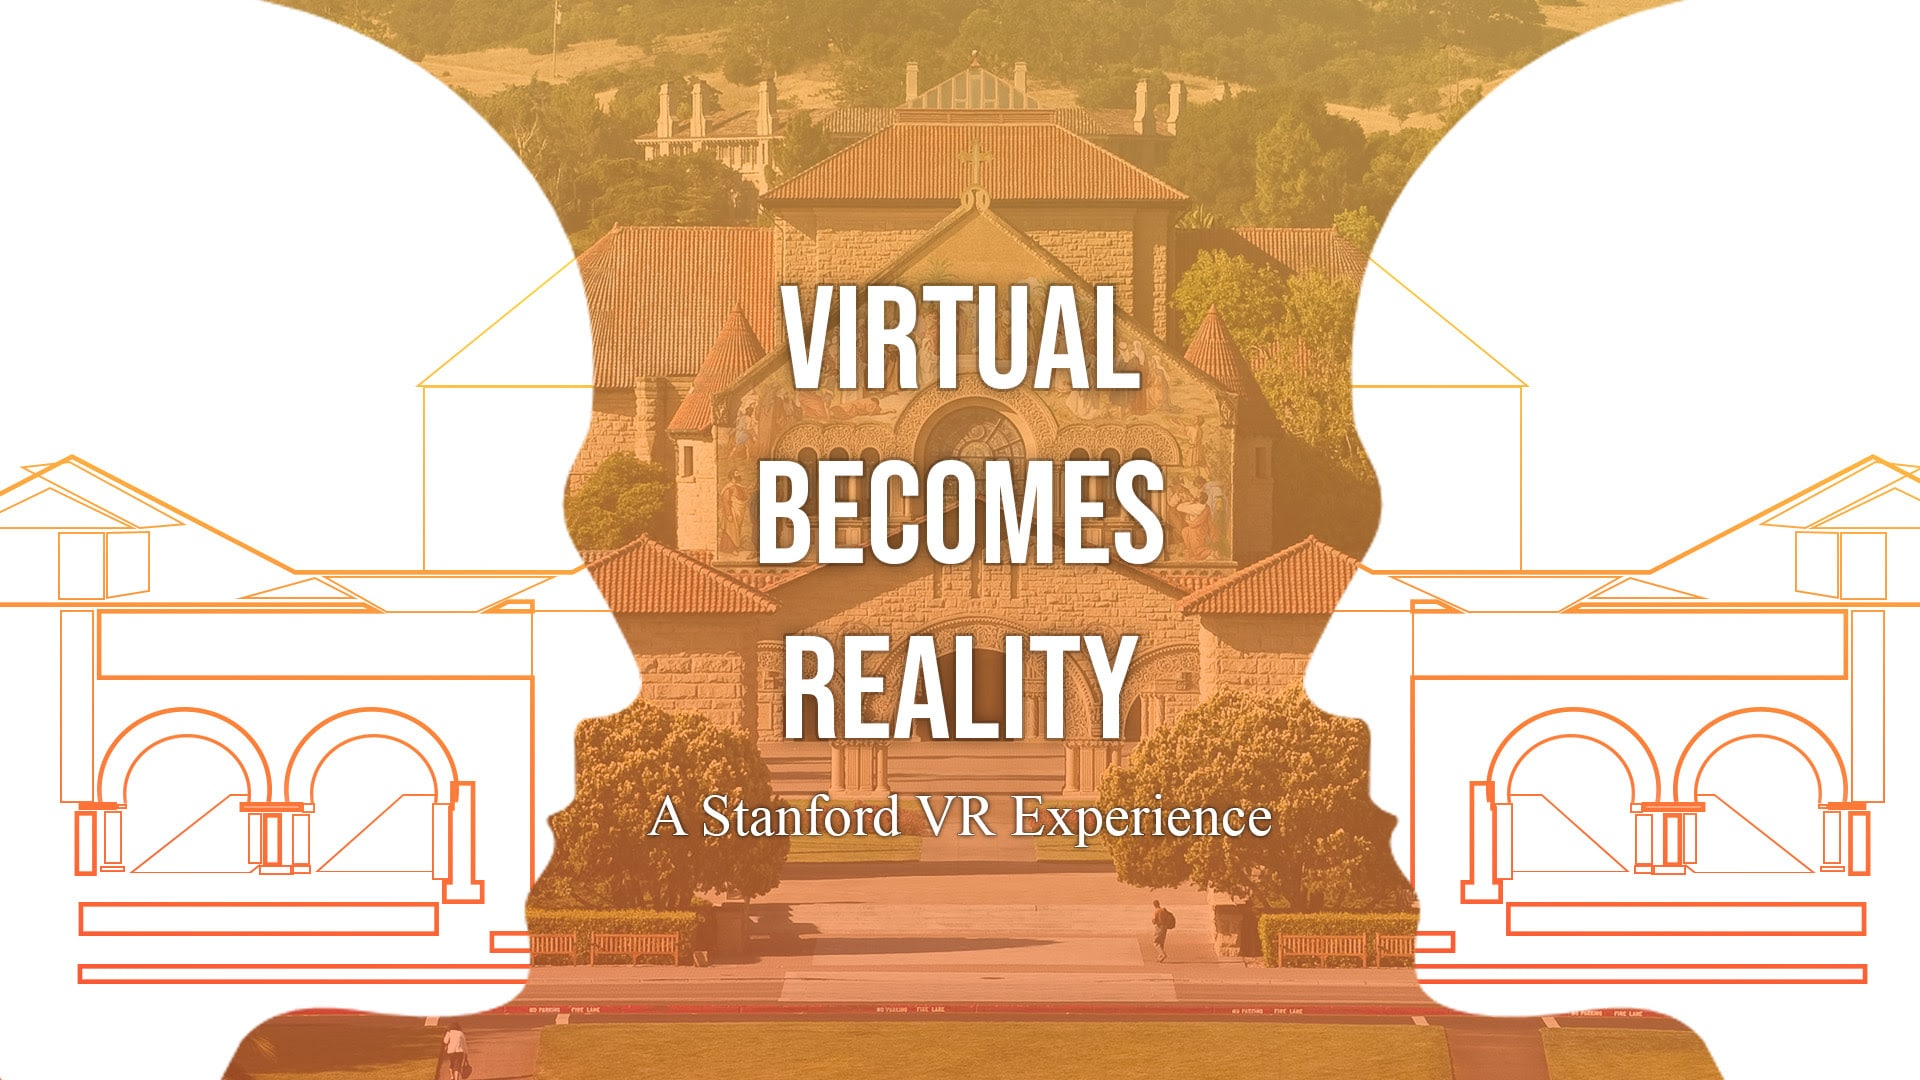 the stanford vr experience